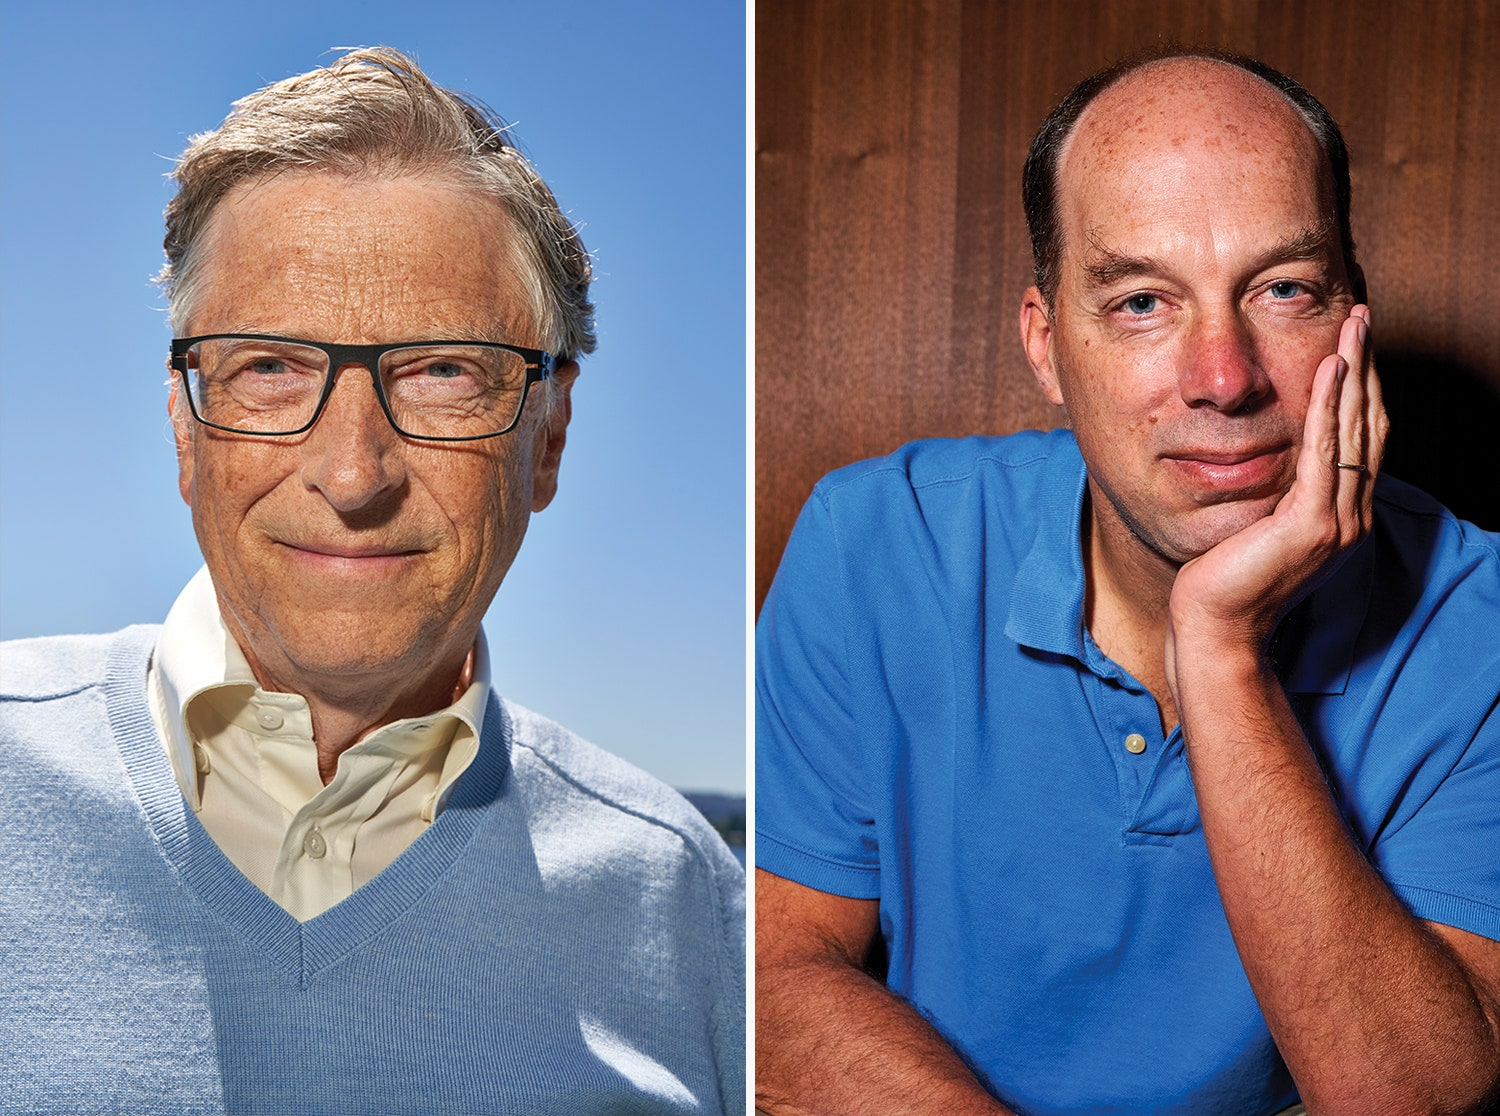 Photos of Bill Gates (left) and Steve Quake (right)